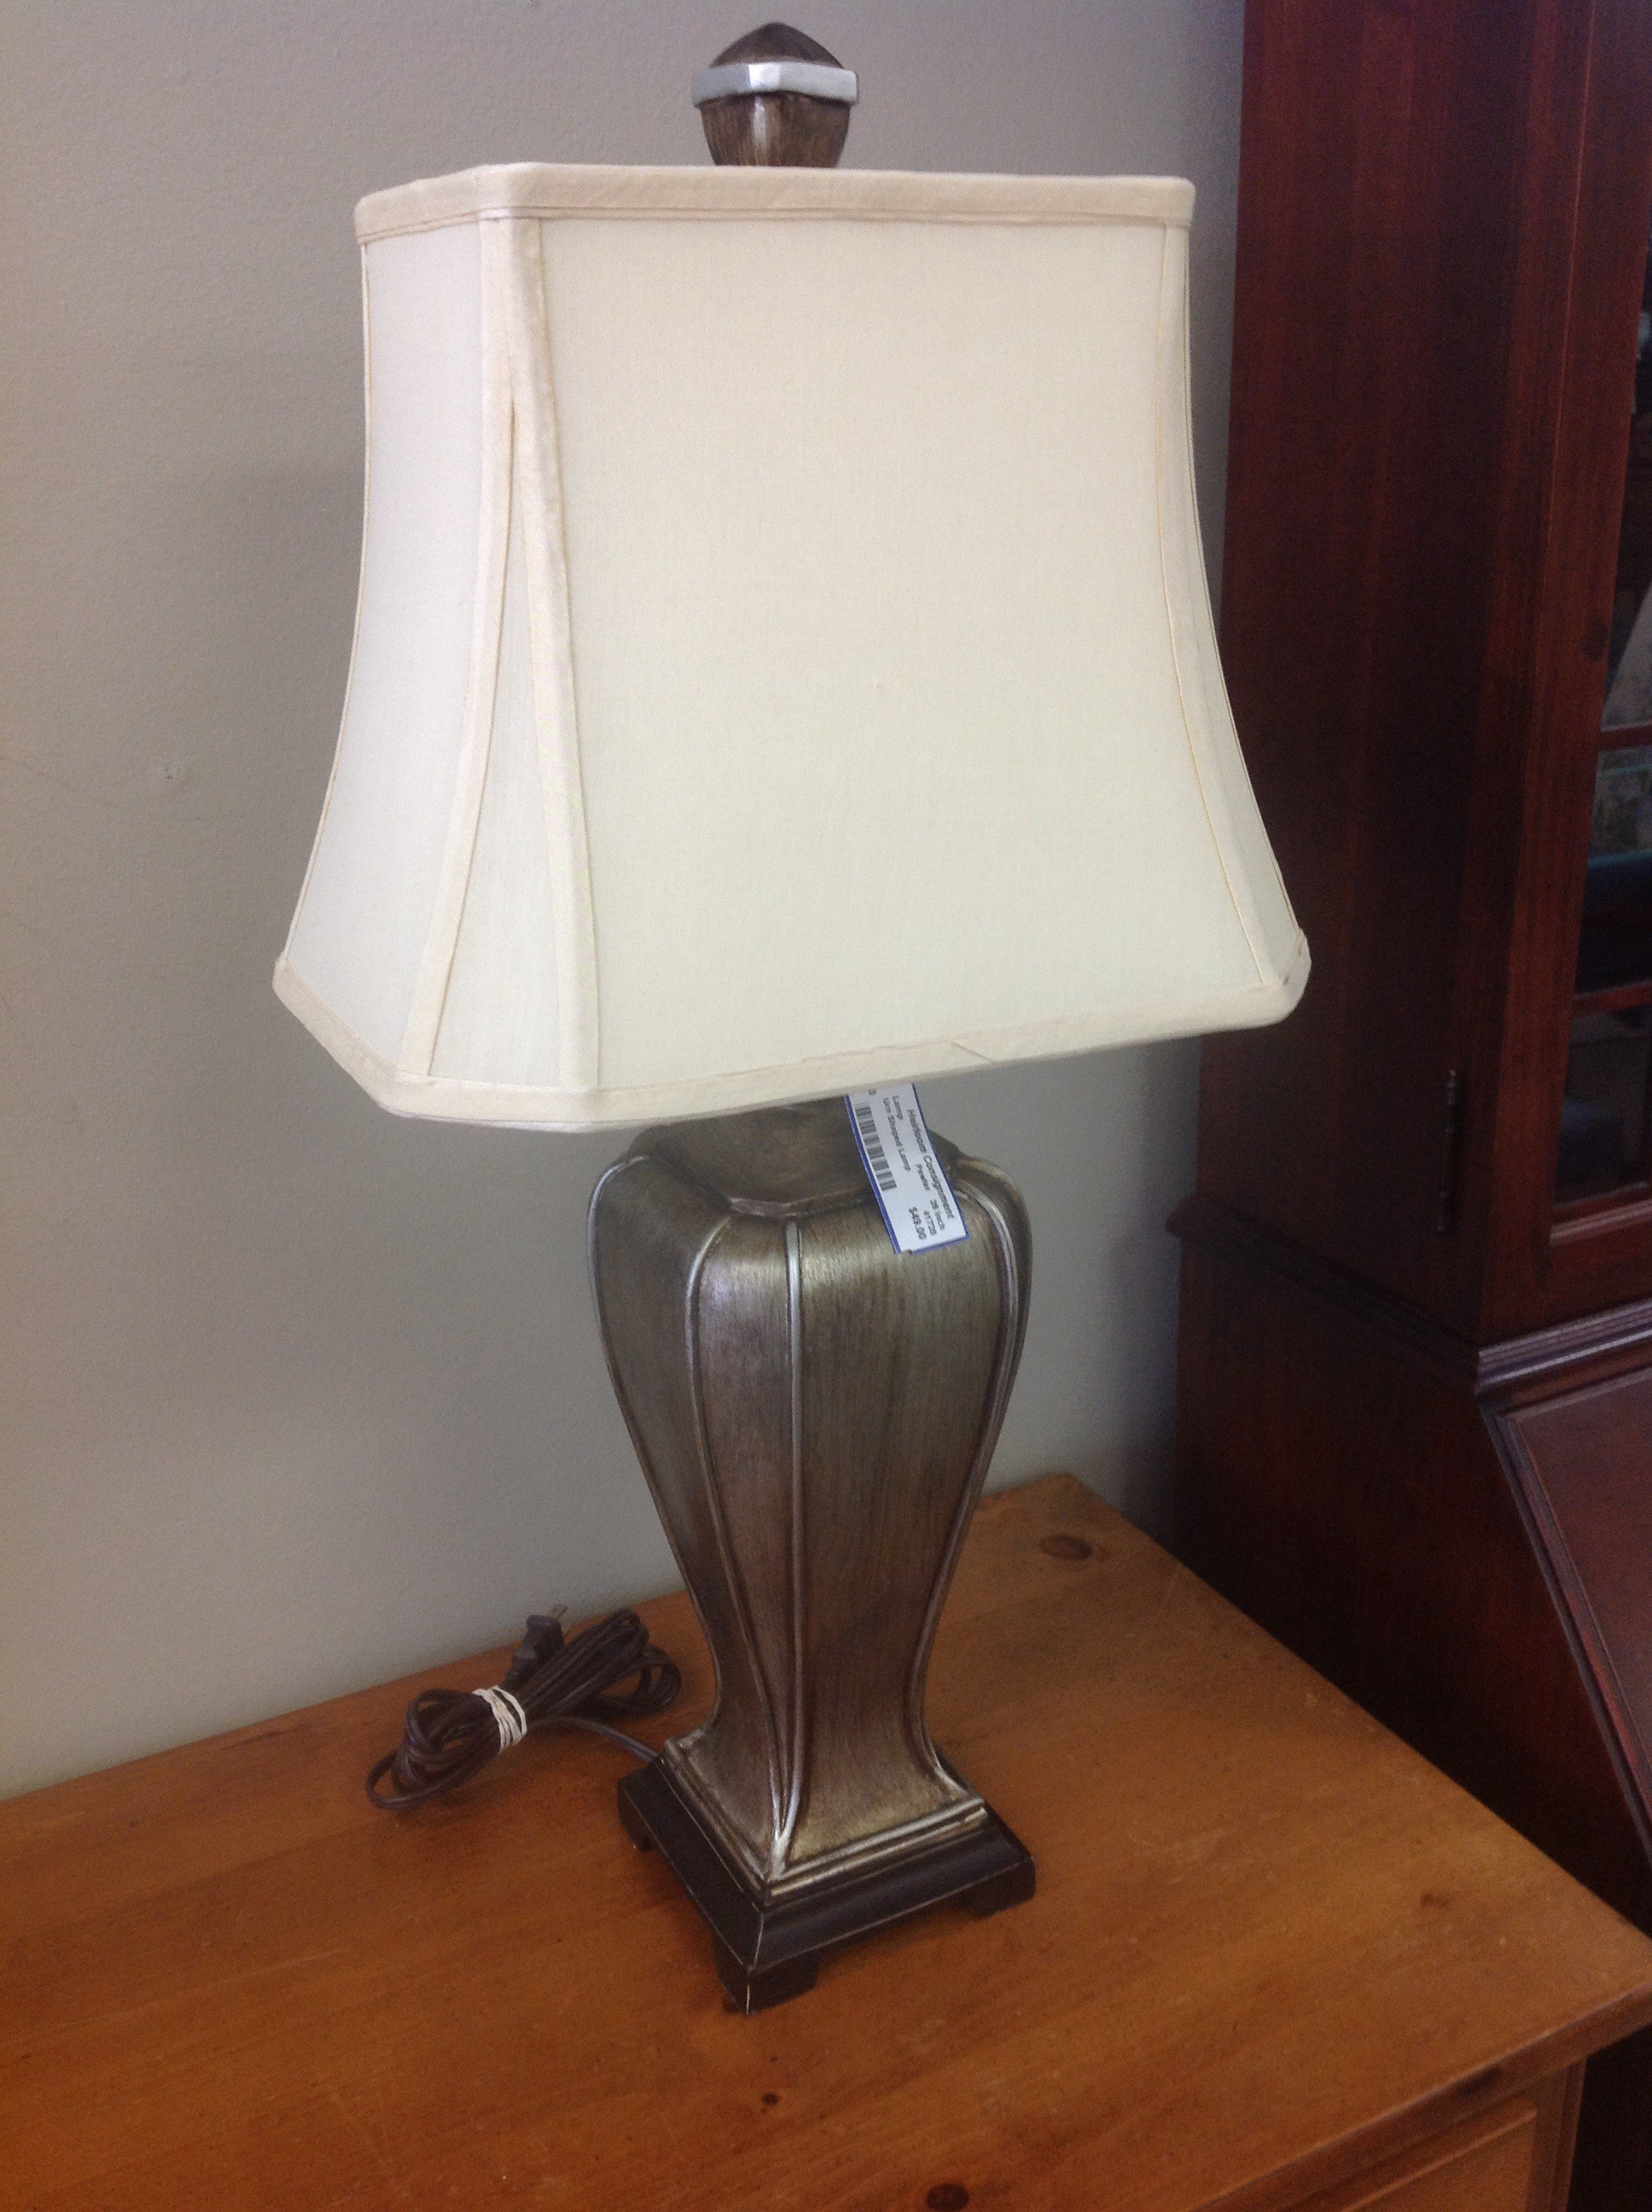 Urn Shaped Lamp, Pewter, Size: 26 Inch